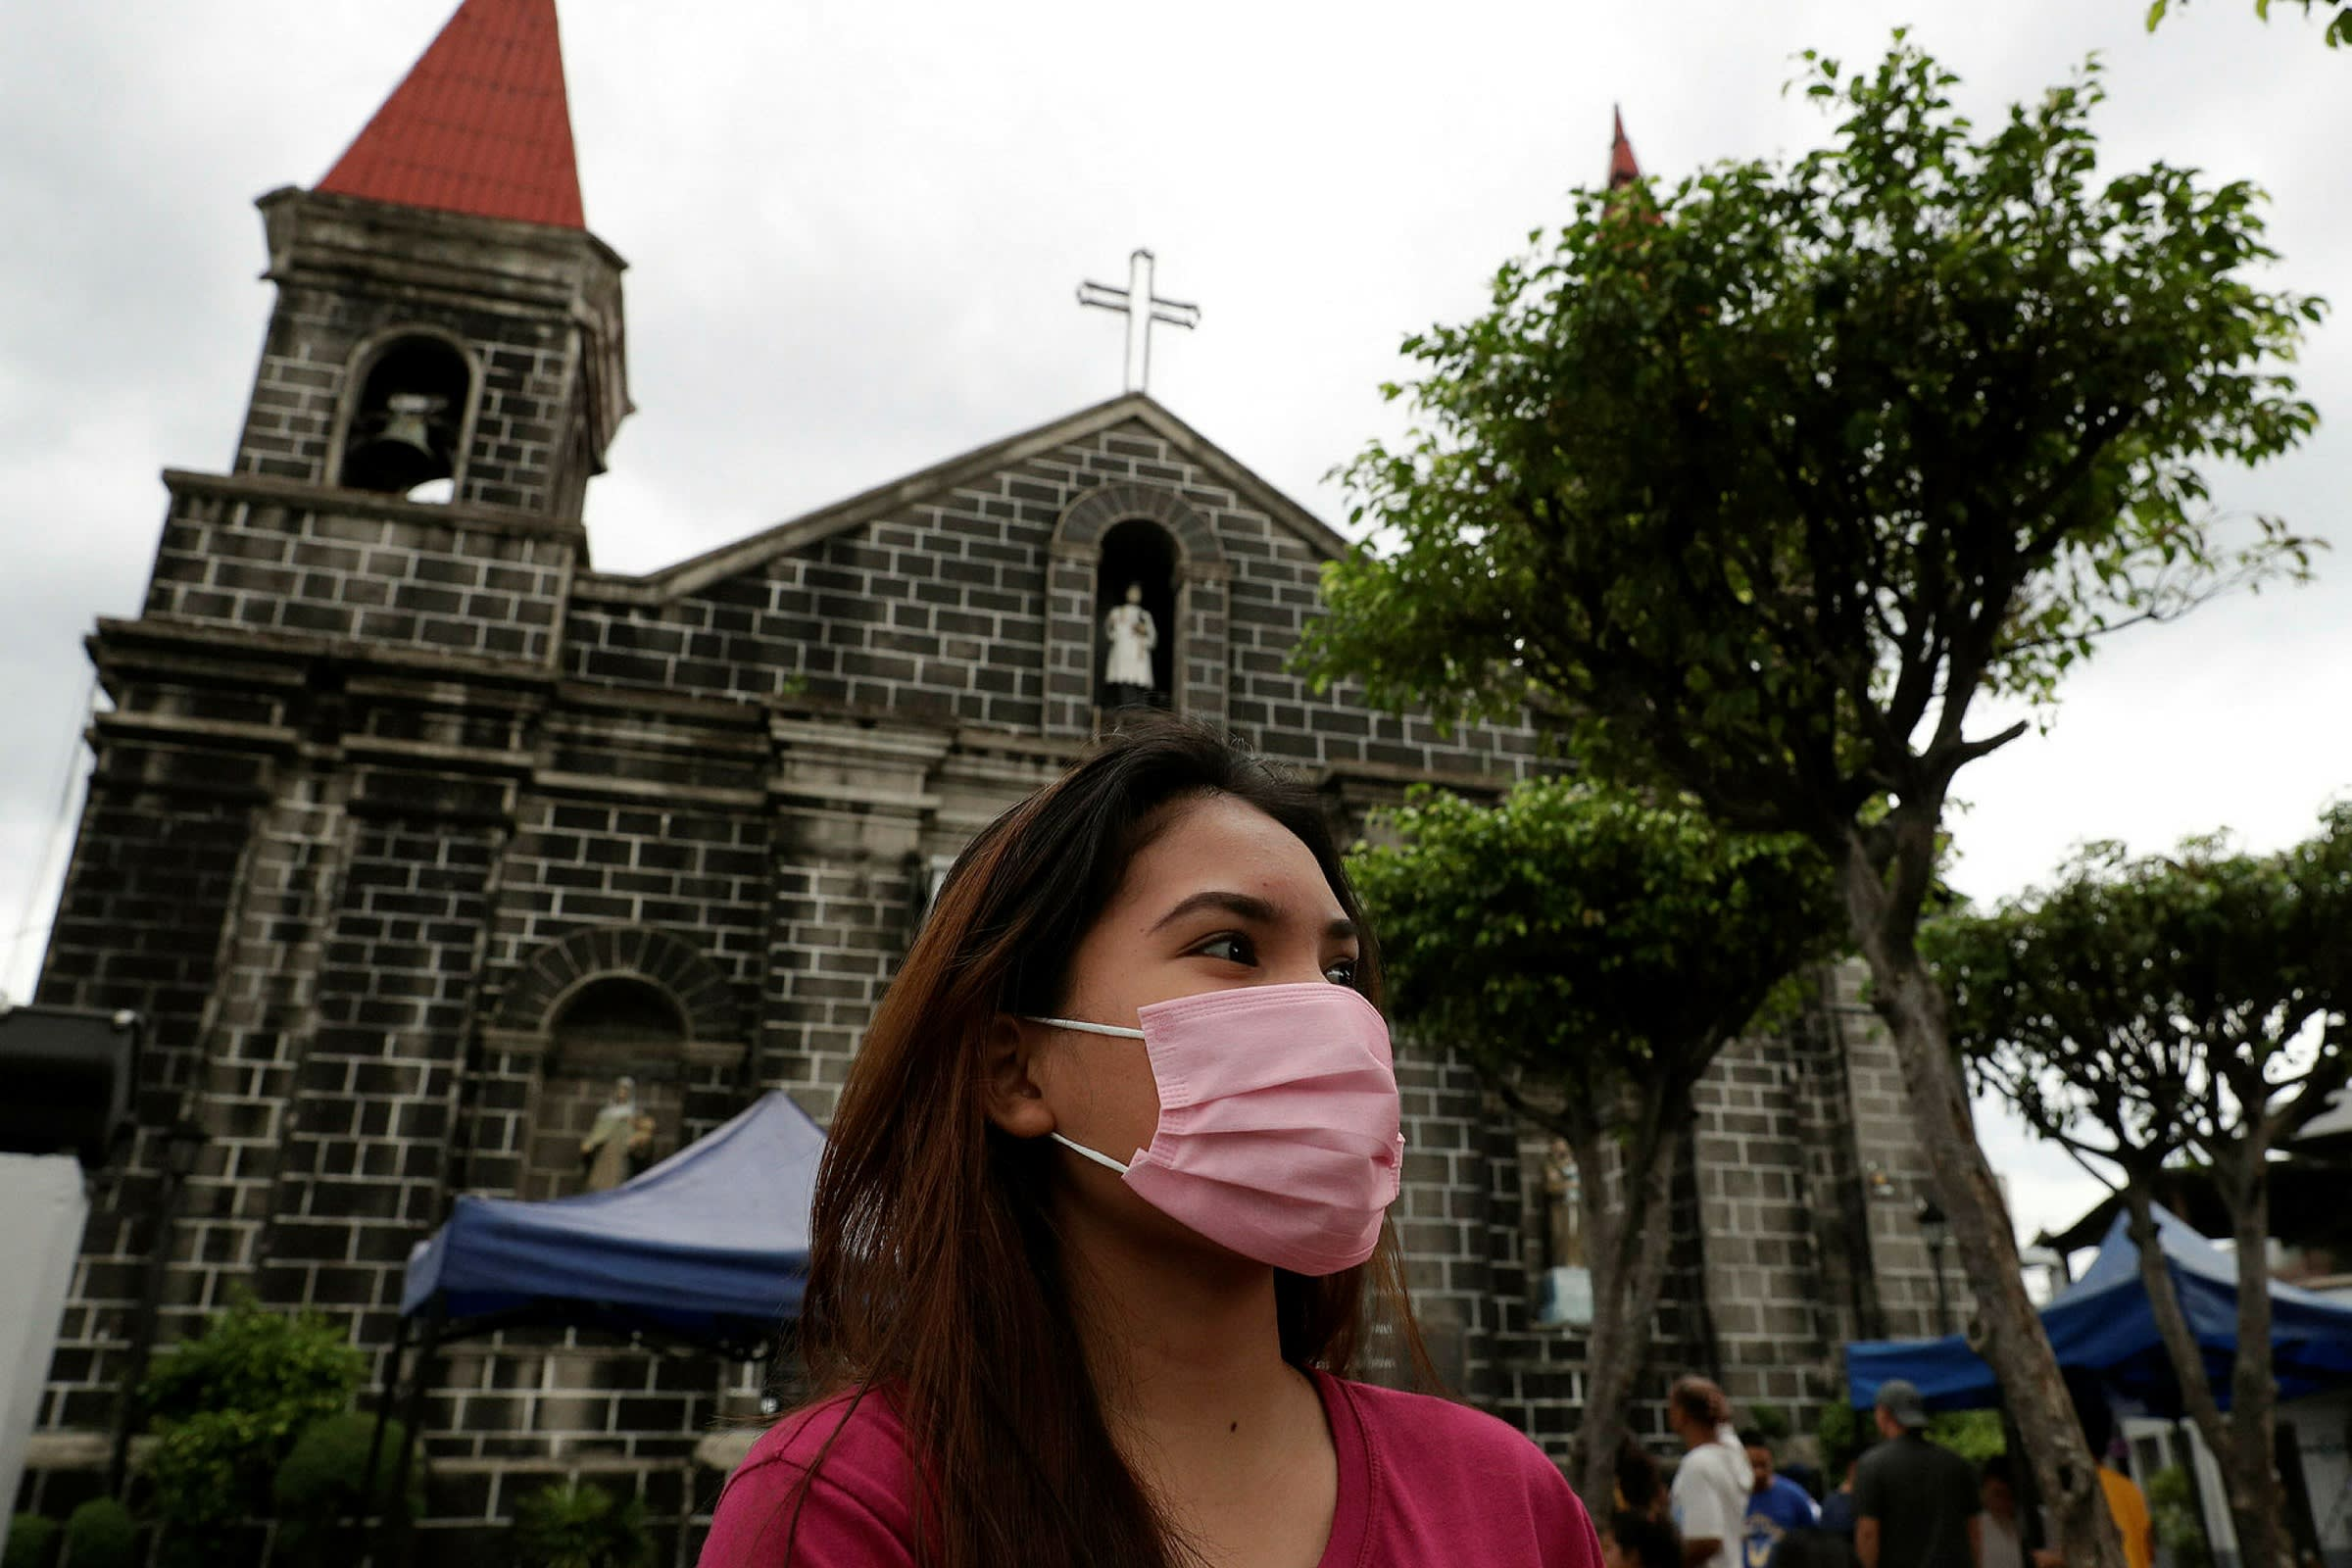 The Philippines faces tougher rules on mass gatherings, such as church services